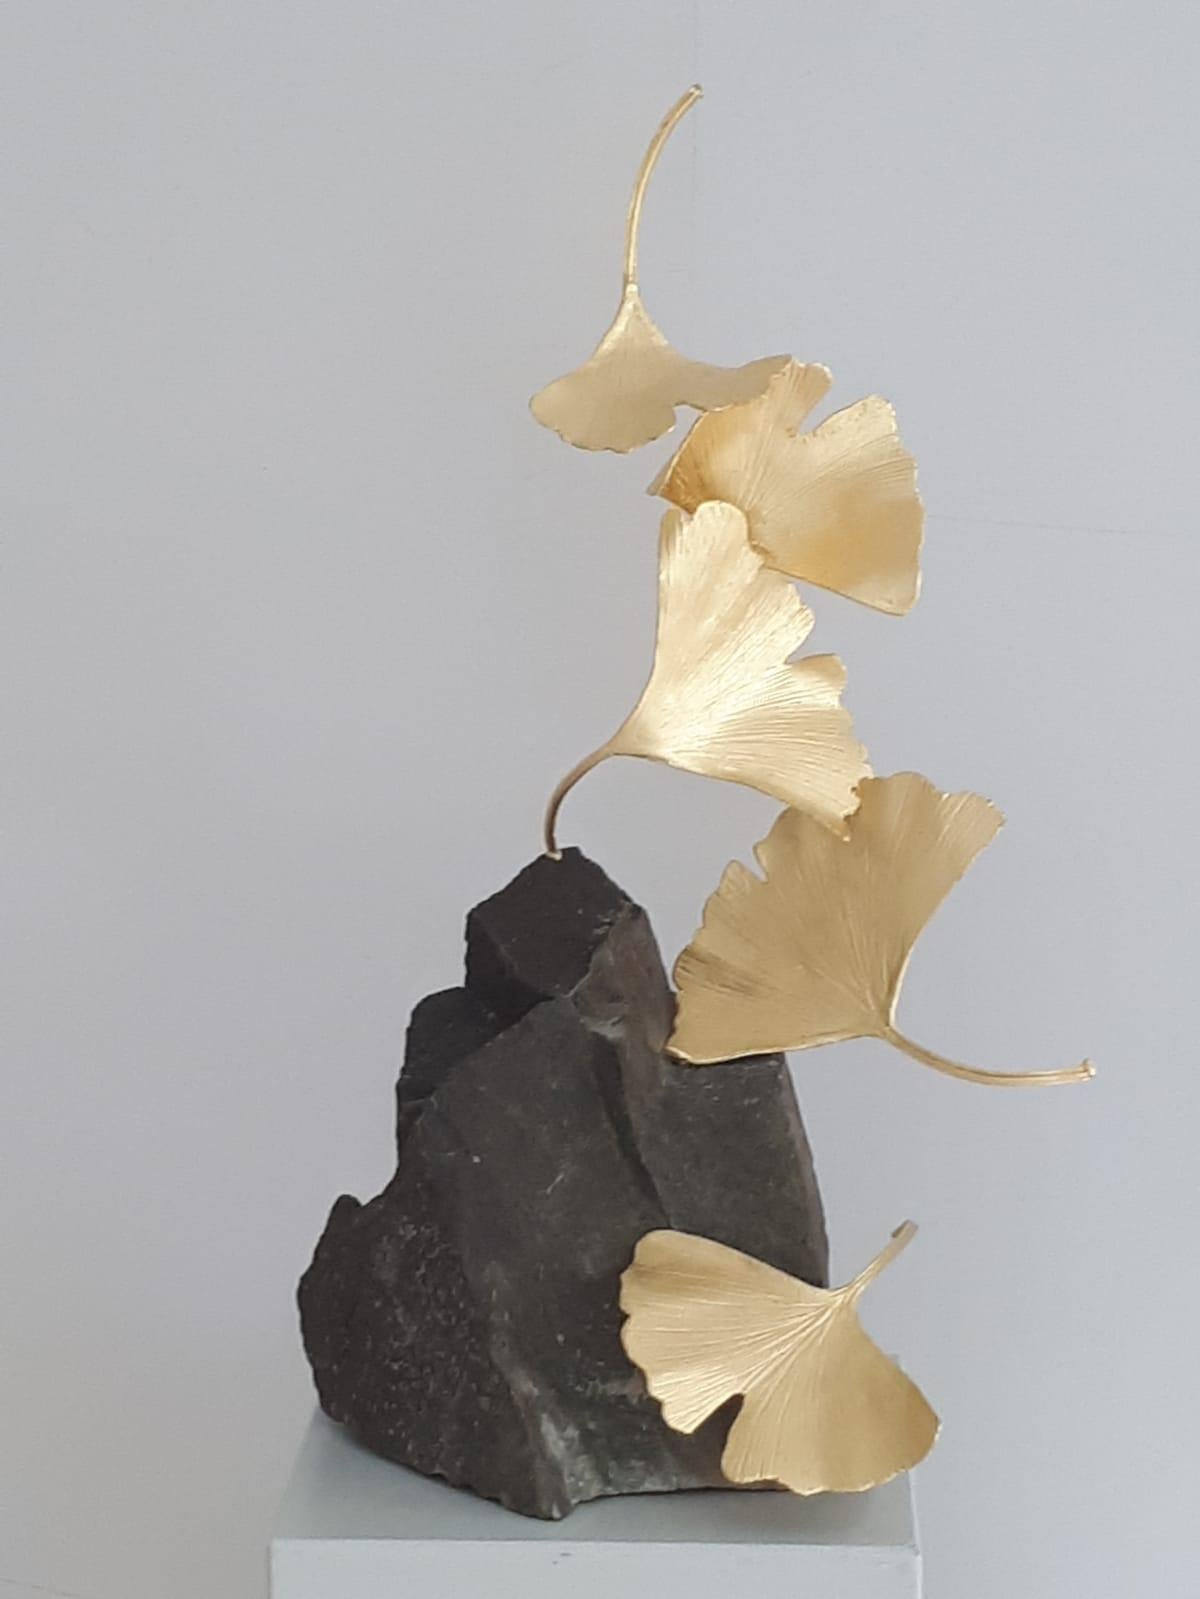 5 Leaf Stone Gingko by Kuno Vollet - Gilded Brass Gingko sculpture on stone base